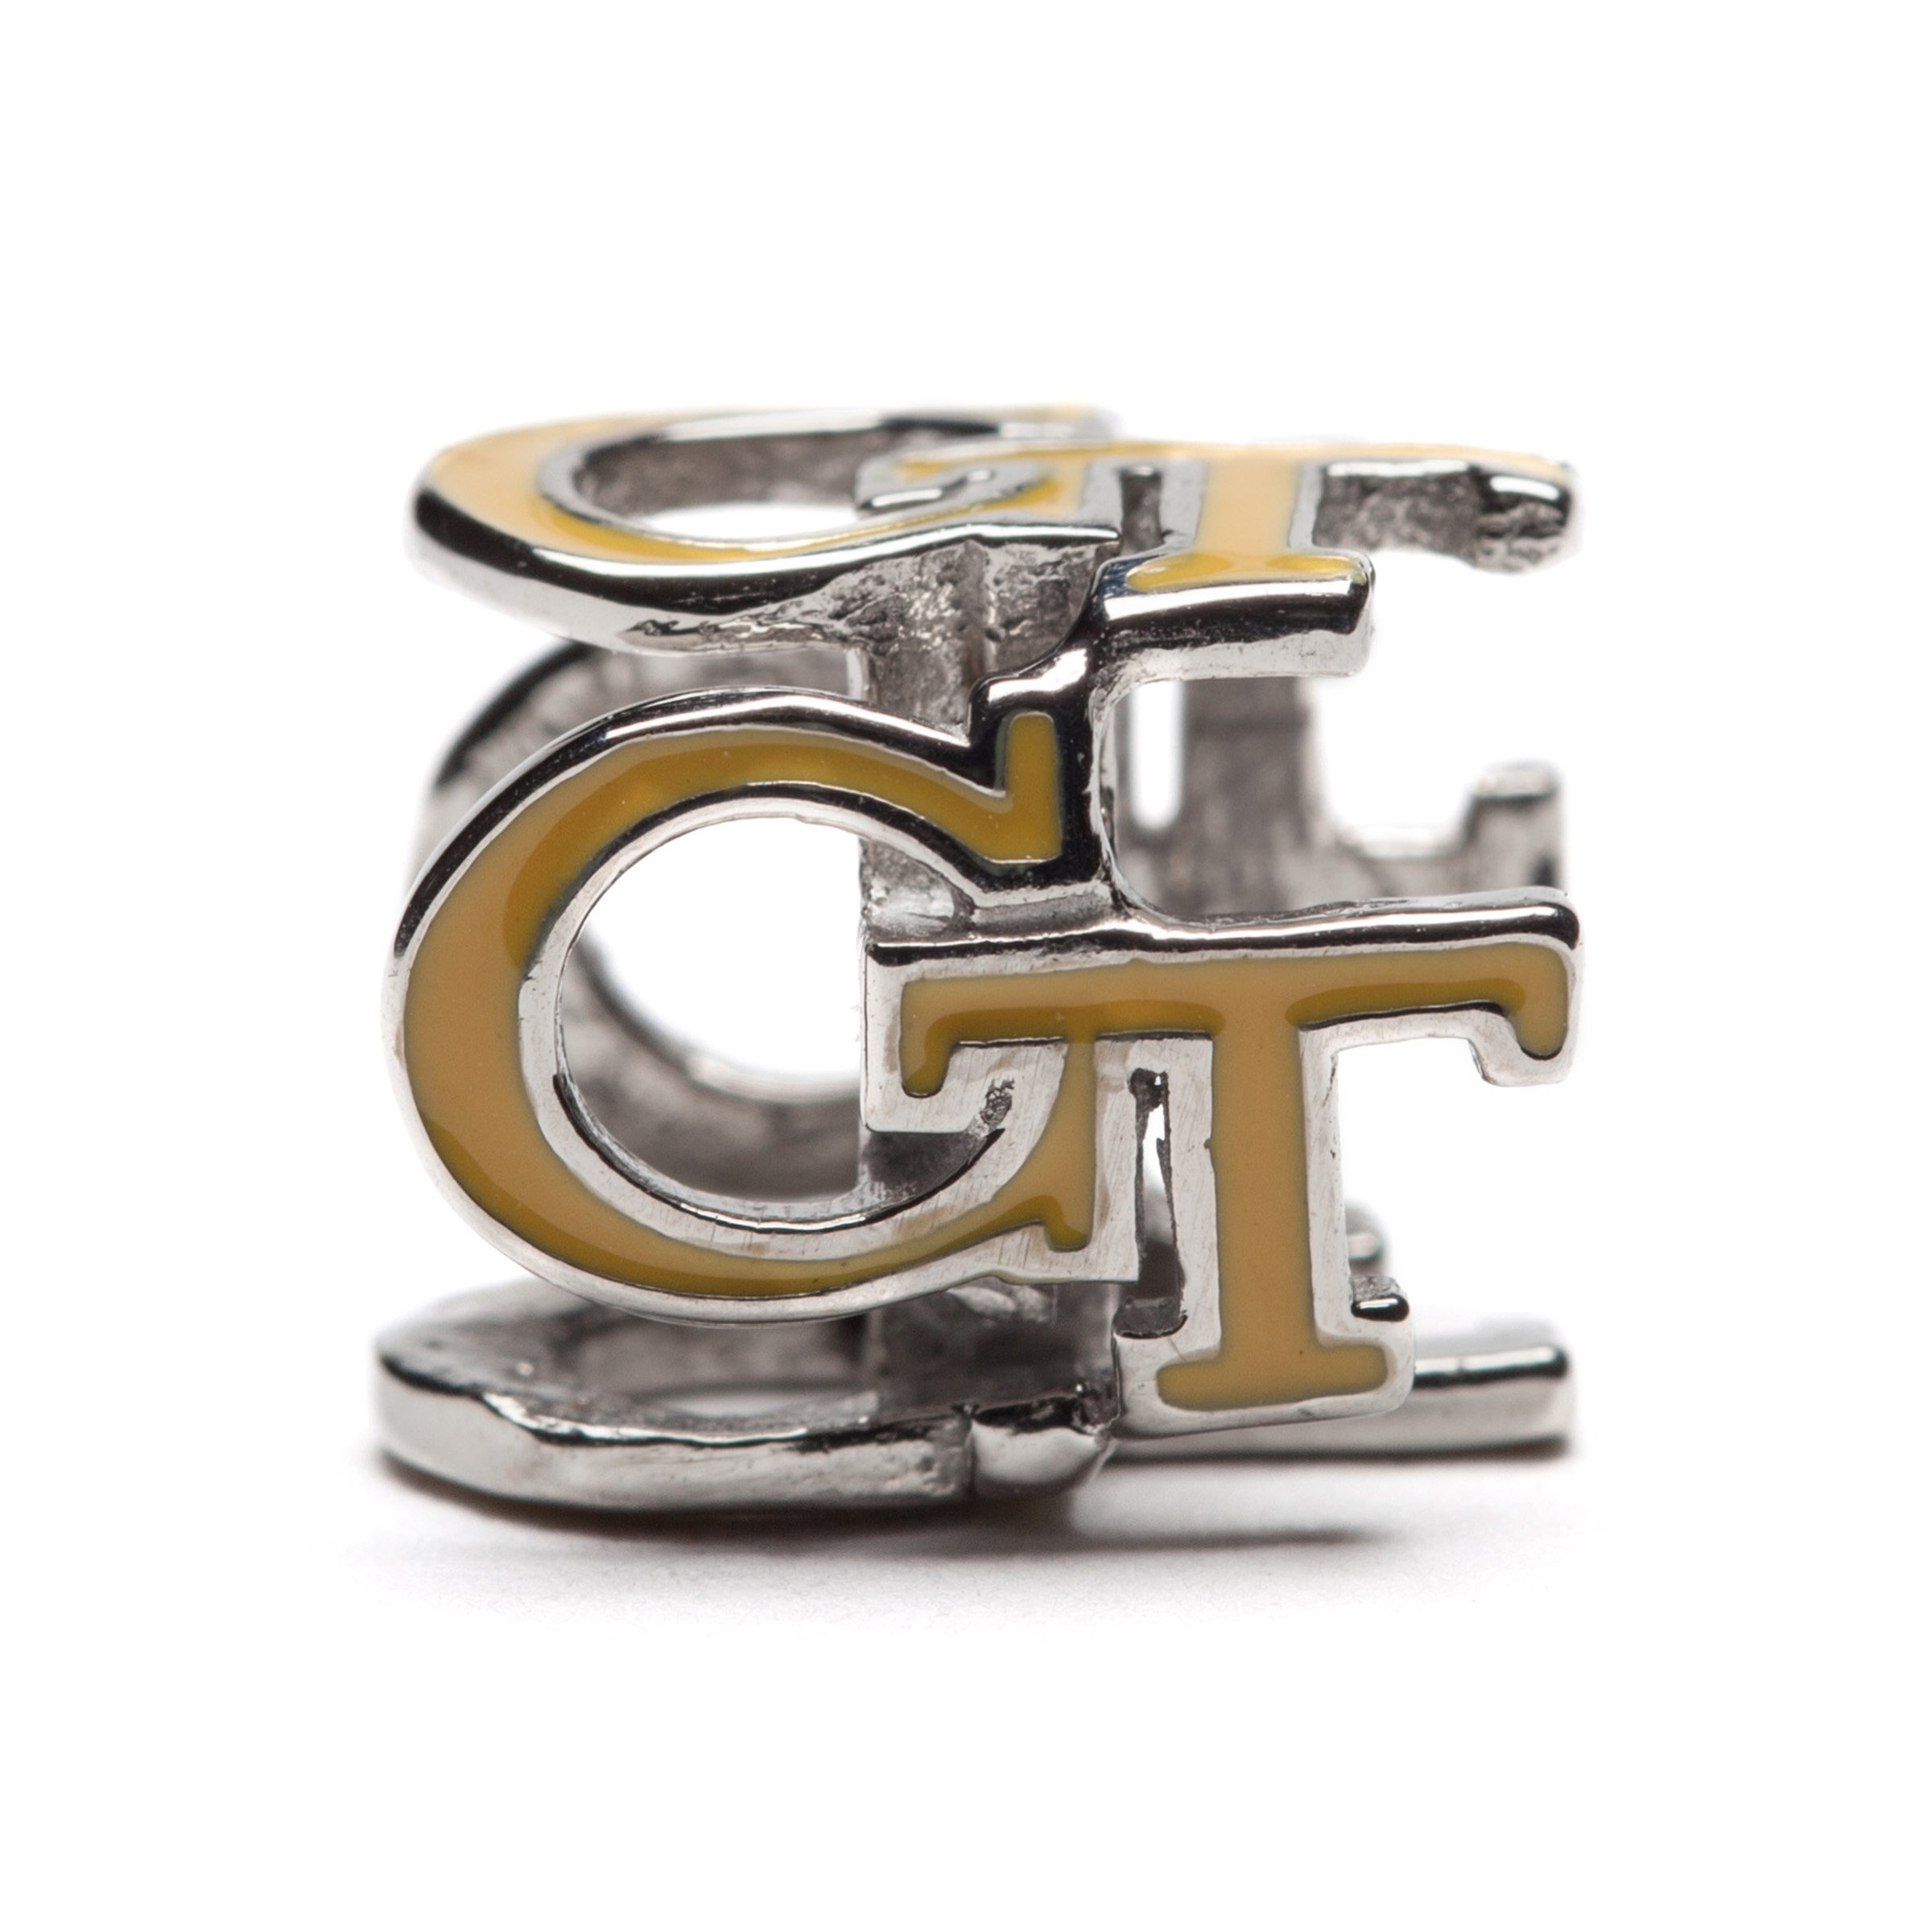 Georgia Tech Charm | GT Yellow Jackets - Gold Colored Block GT 4-Sided Charm | Officially Licensed Georgia Tech Jewelry | Georgia Tech Ramblin Wreck | GT Jewelry | GT Charms | Stainless Steel by Stone Armory